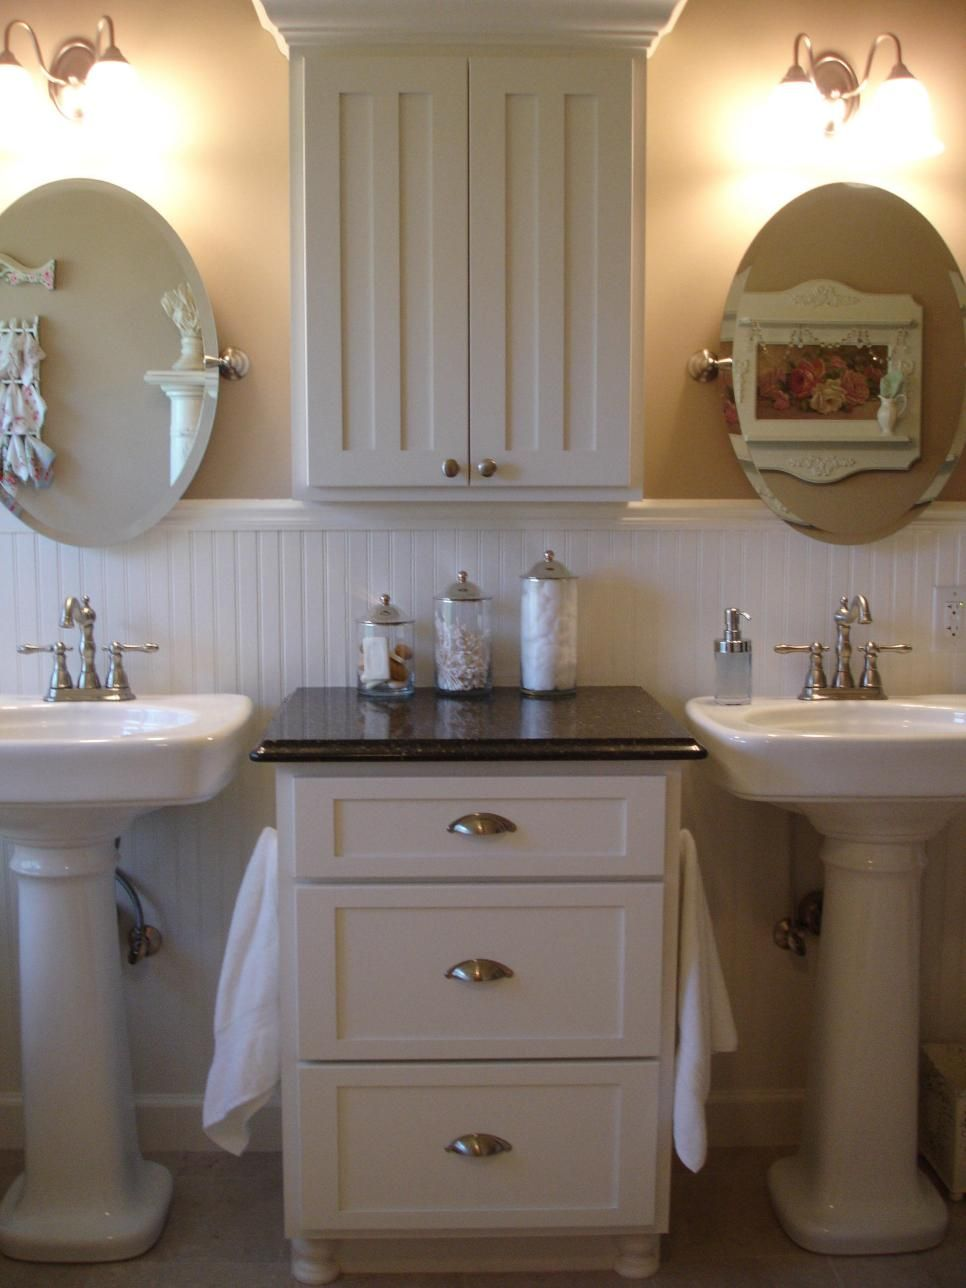 Bathroom Organization Bathroom Storage Solutions Small Bathroom